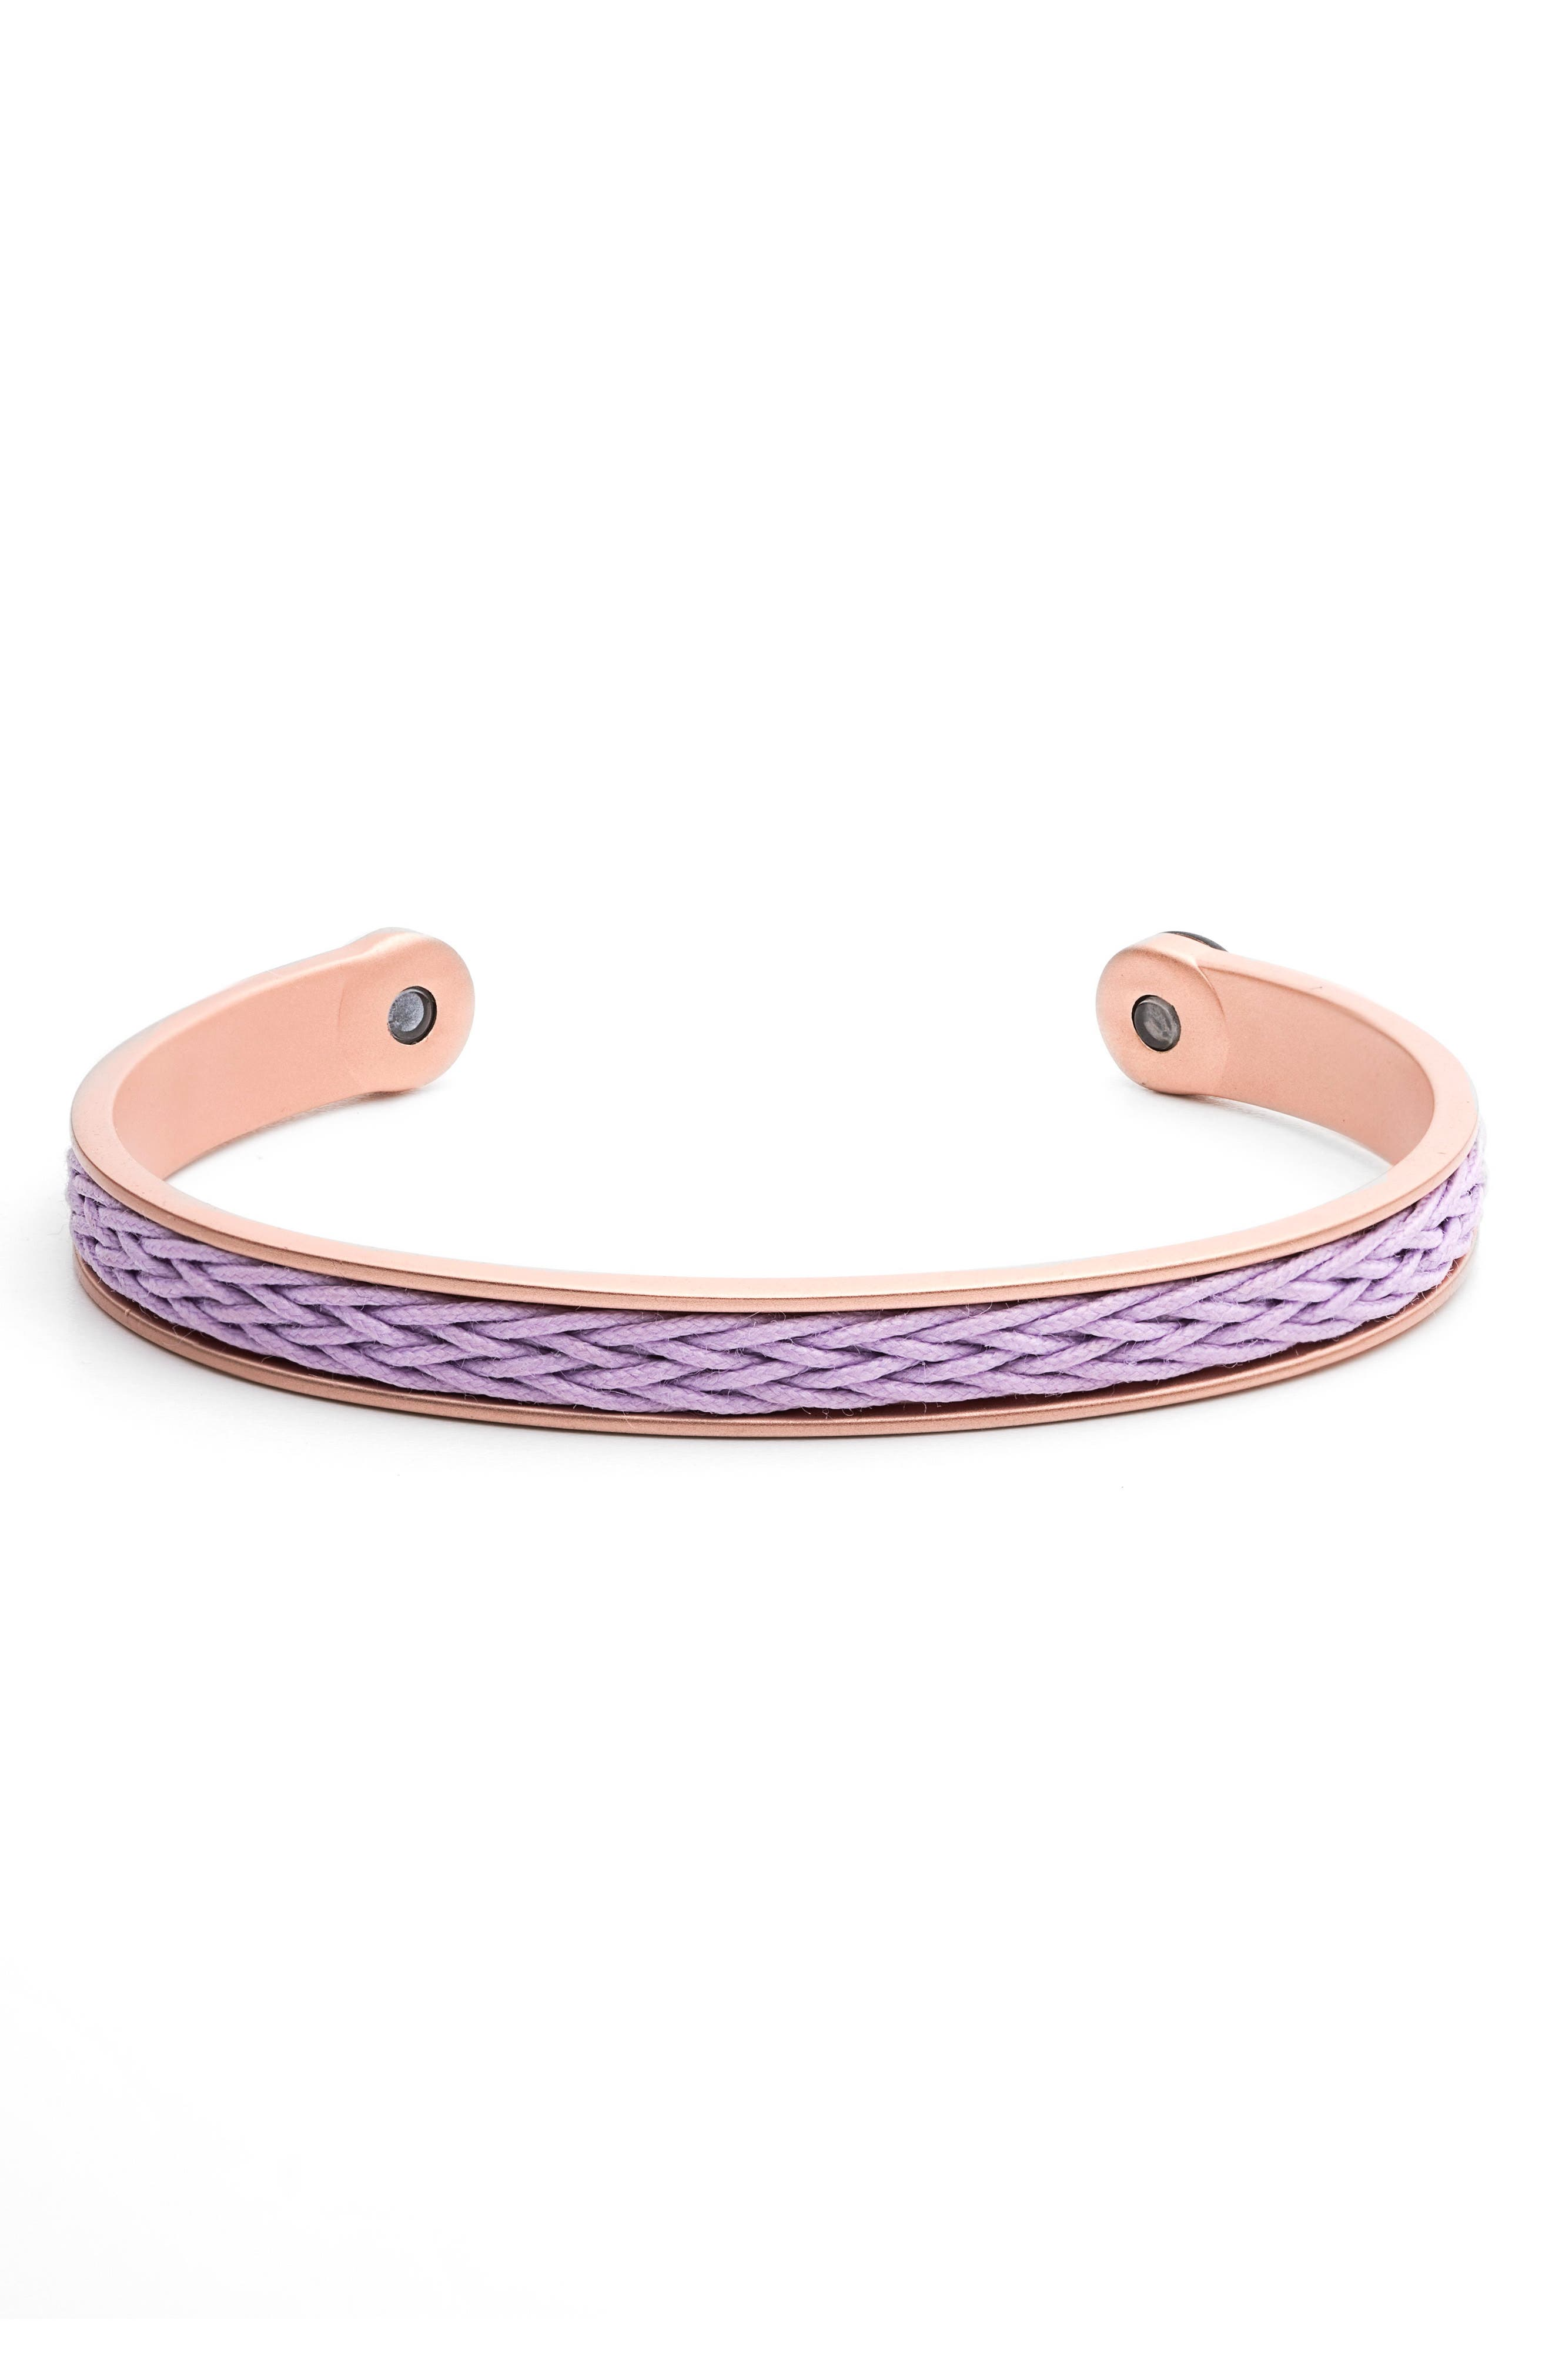 Braided Cuff Bracelet,                         Main,                         color, Rose Gold/ Lilac